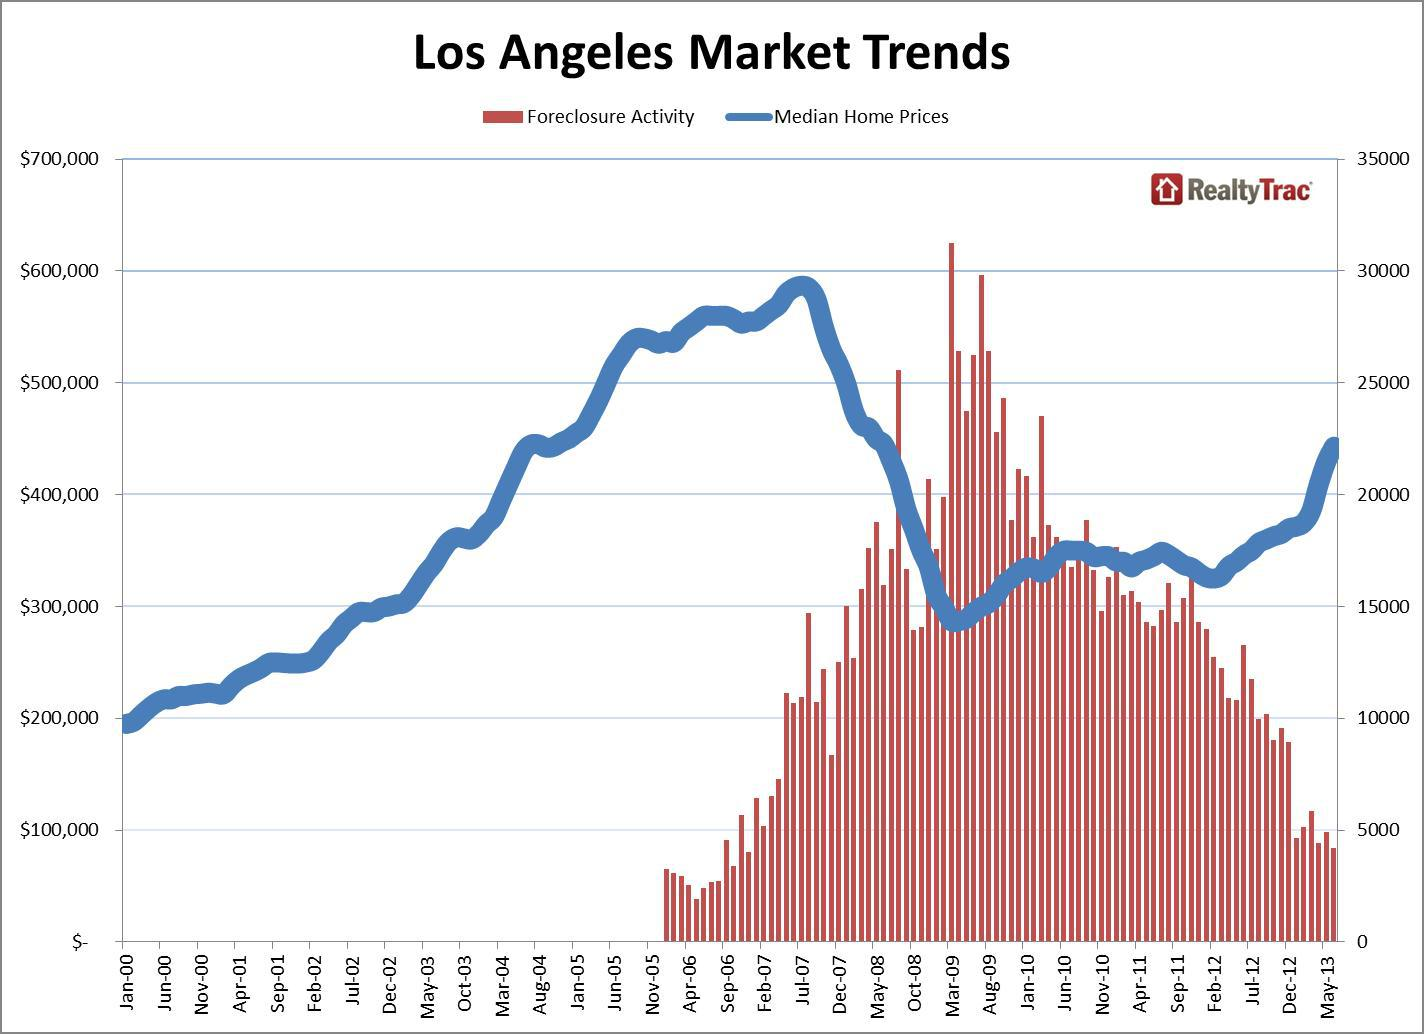 Los Angeles Housing Market Trends